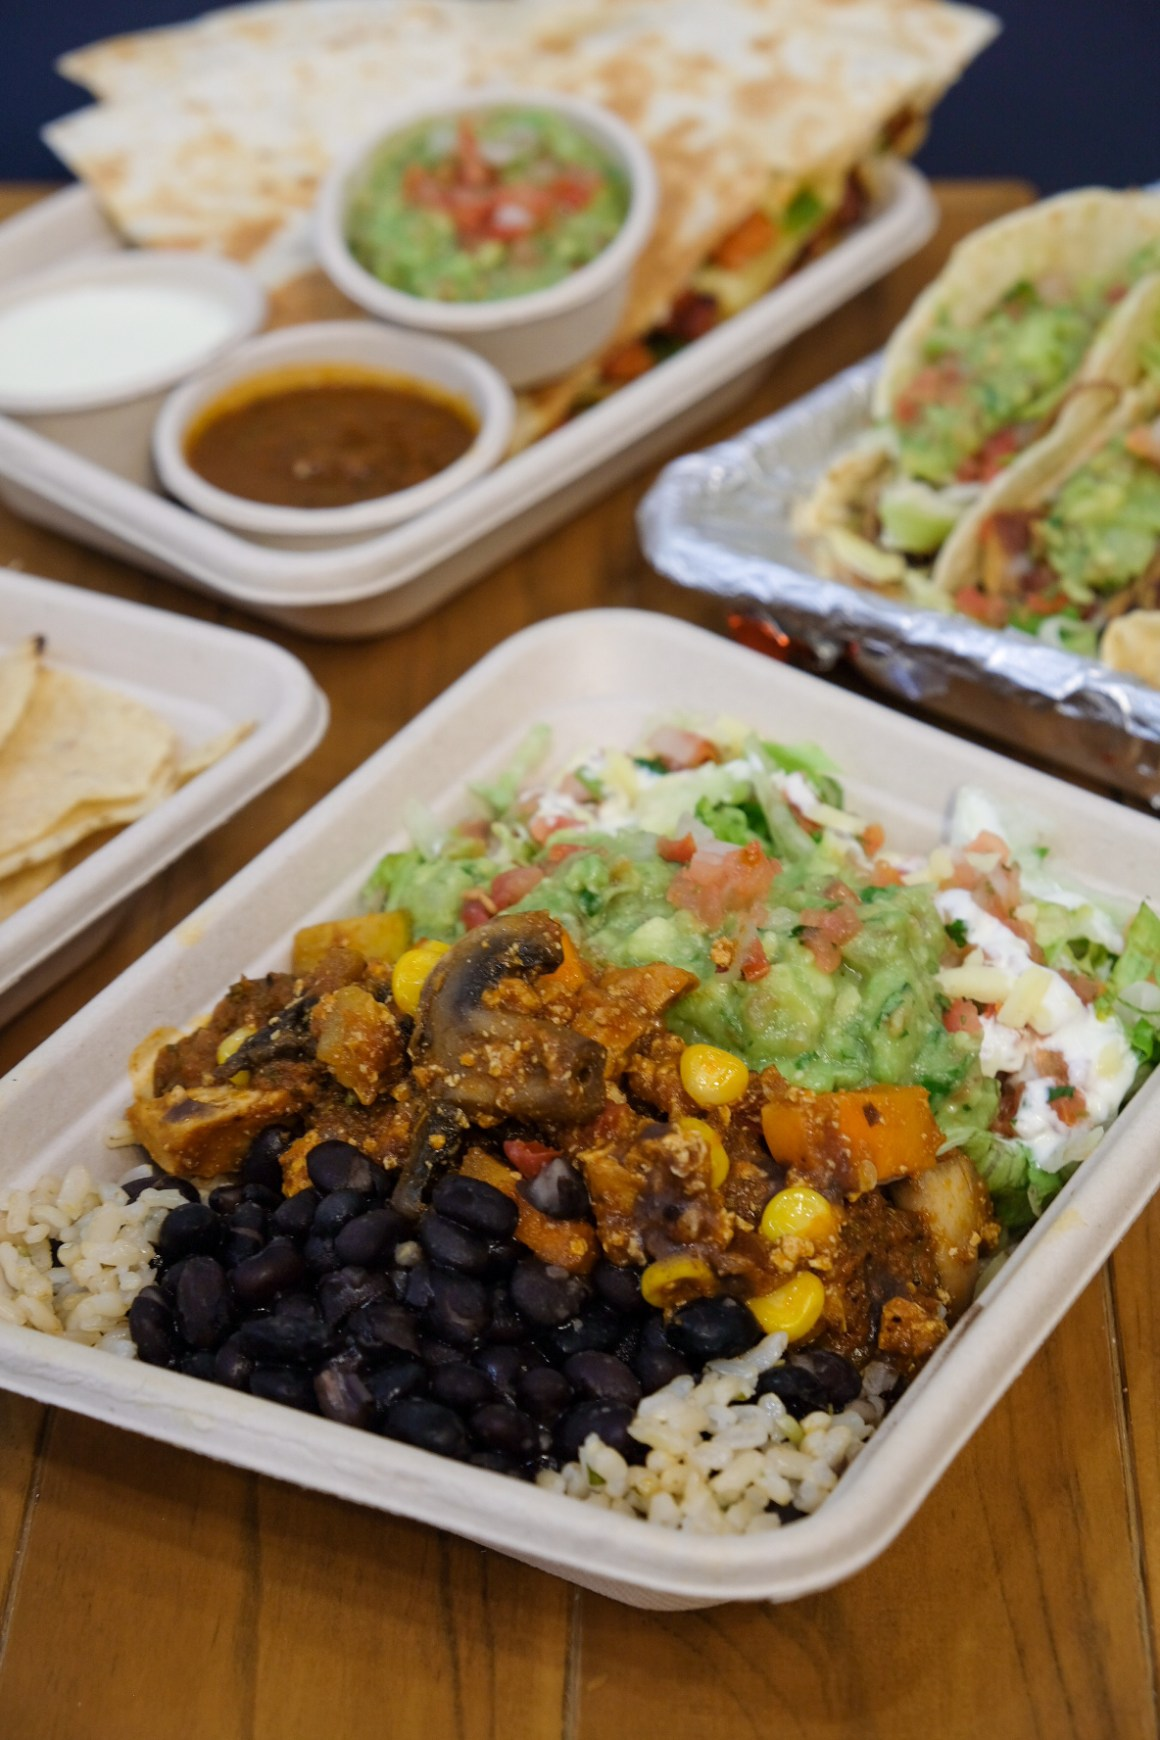 Naked Burrito ($11.90 - regular / $8.90 - small)